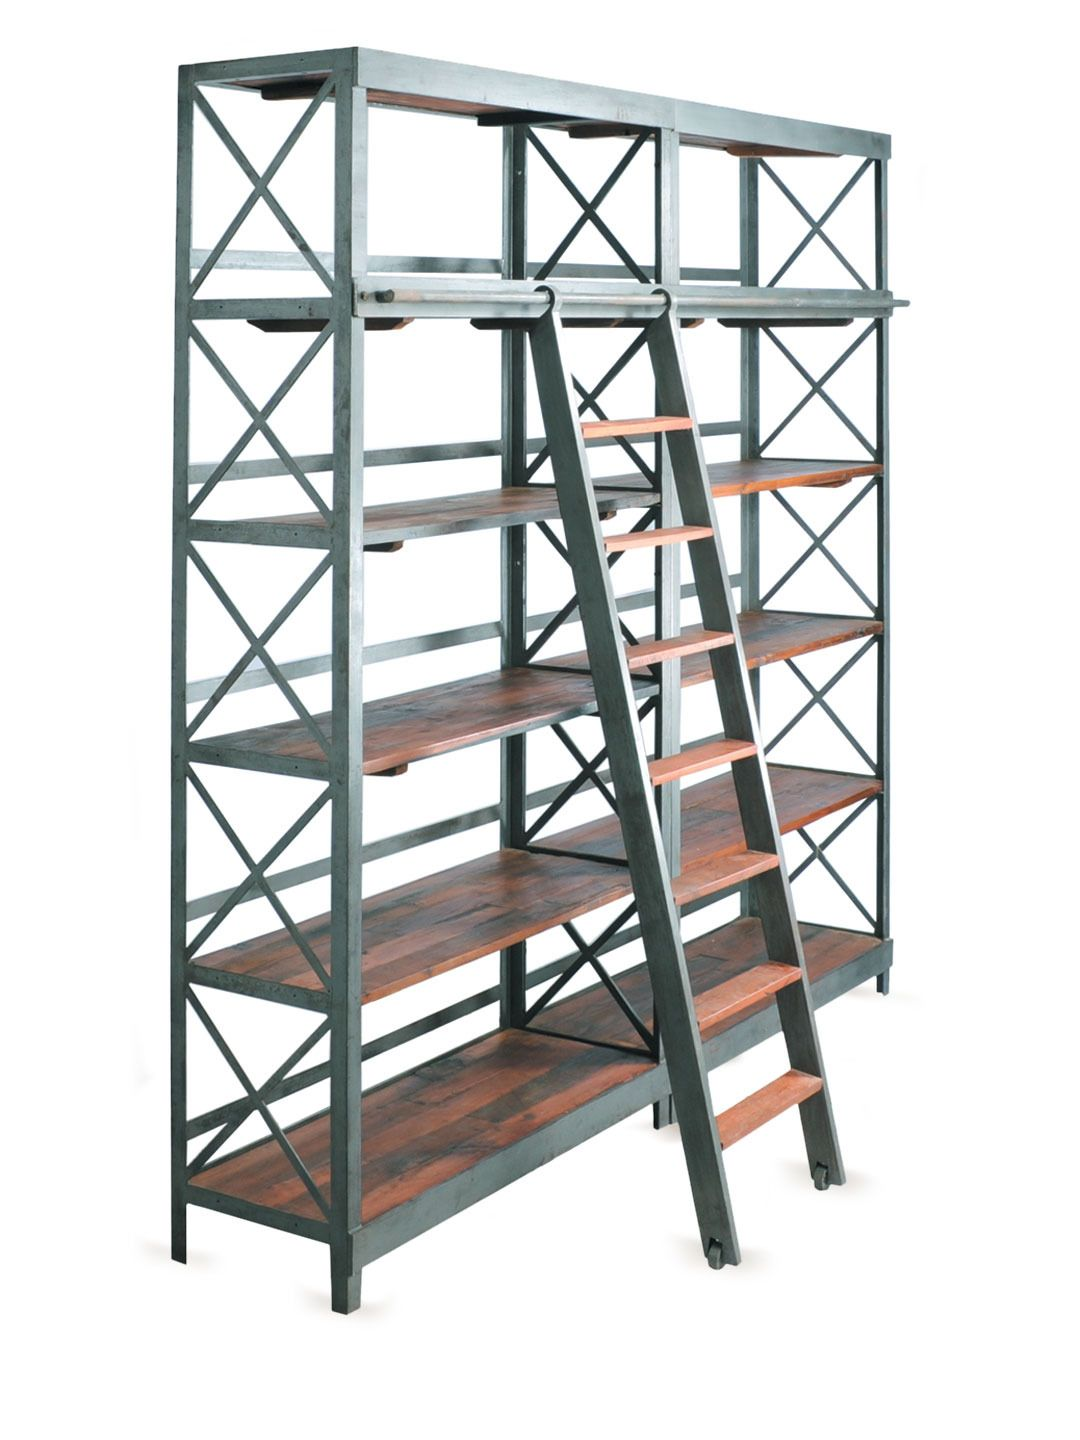 The antiquarian bookshelf avec ladder a library study or family